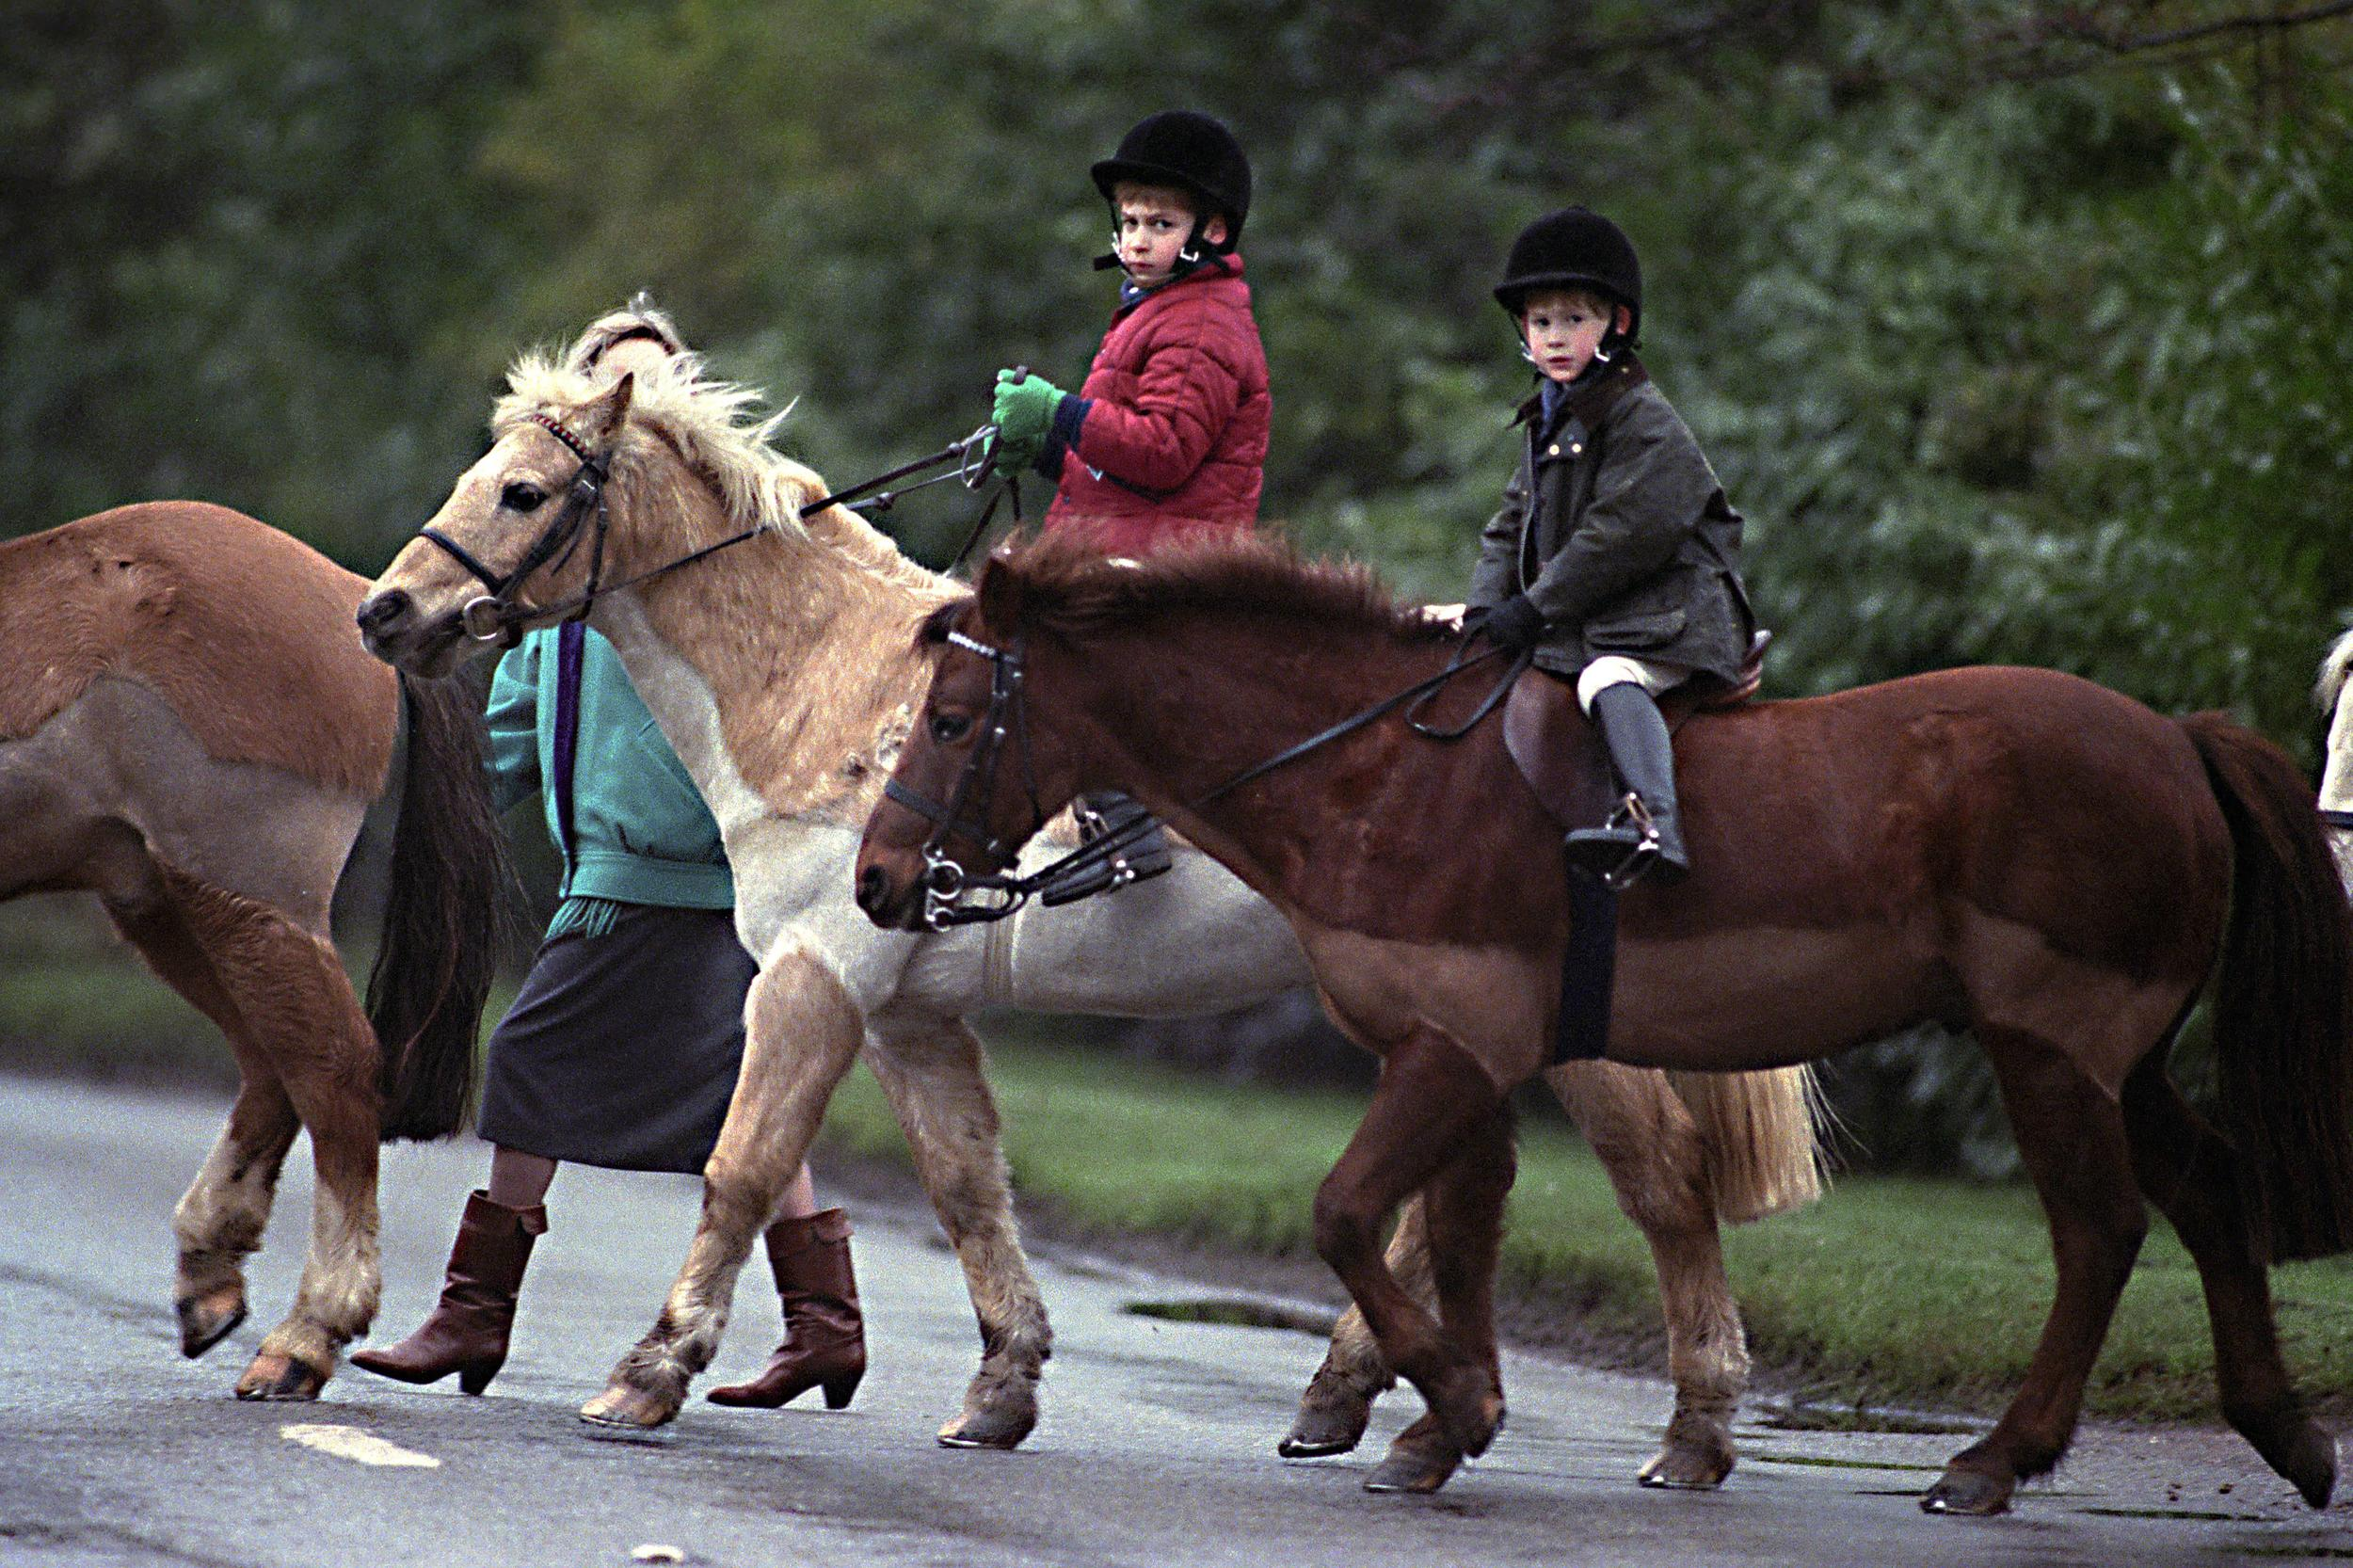 Prince William, And Prince Harry, On Ponies At Sandringham, In Norfolk, Accompanied By Their Nanny. (Photo by Julian Parker/UK Press via Getty Images)